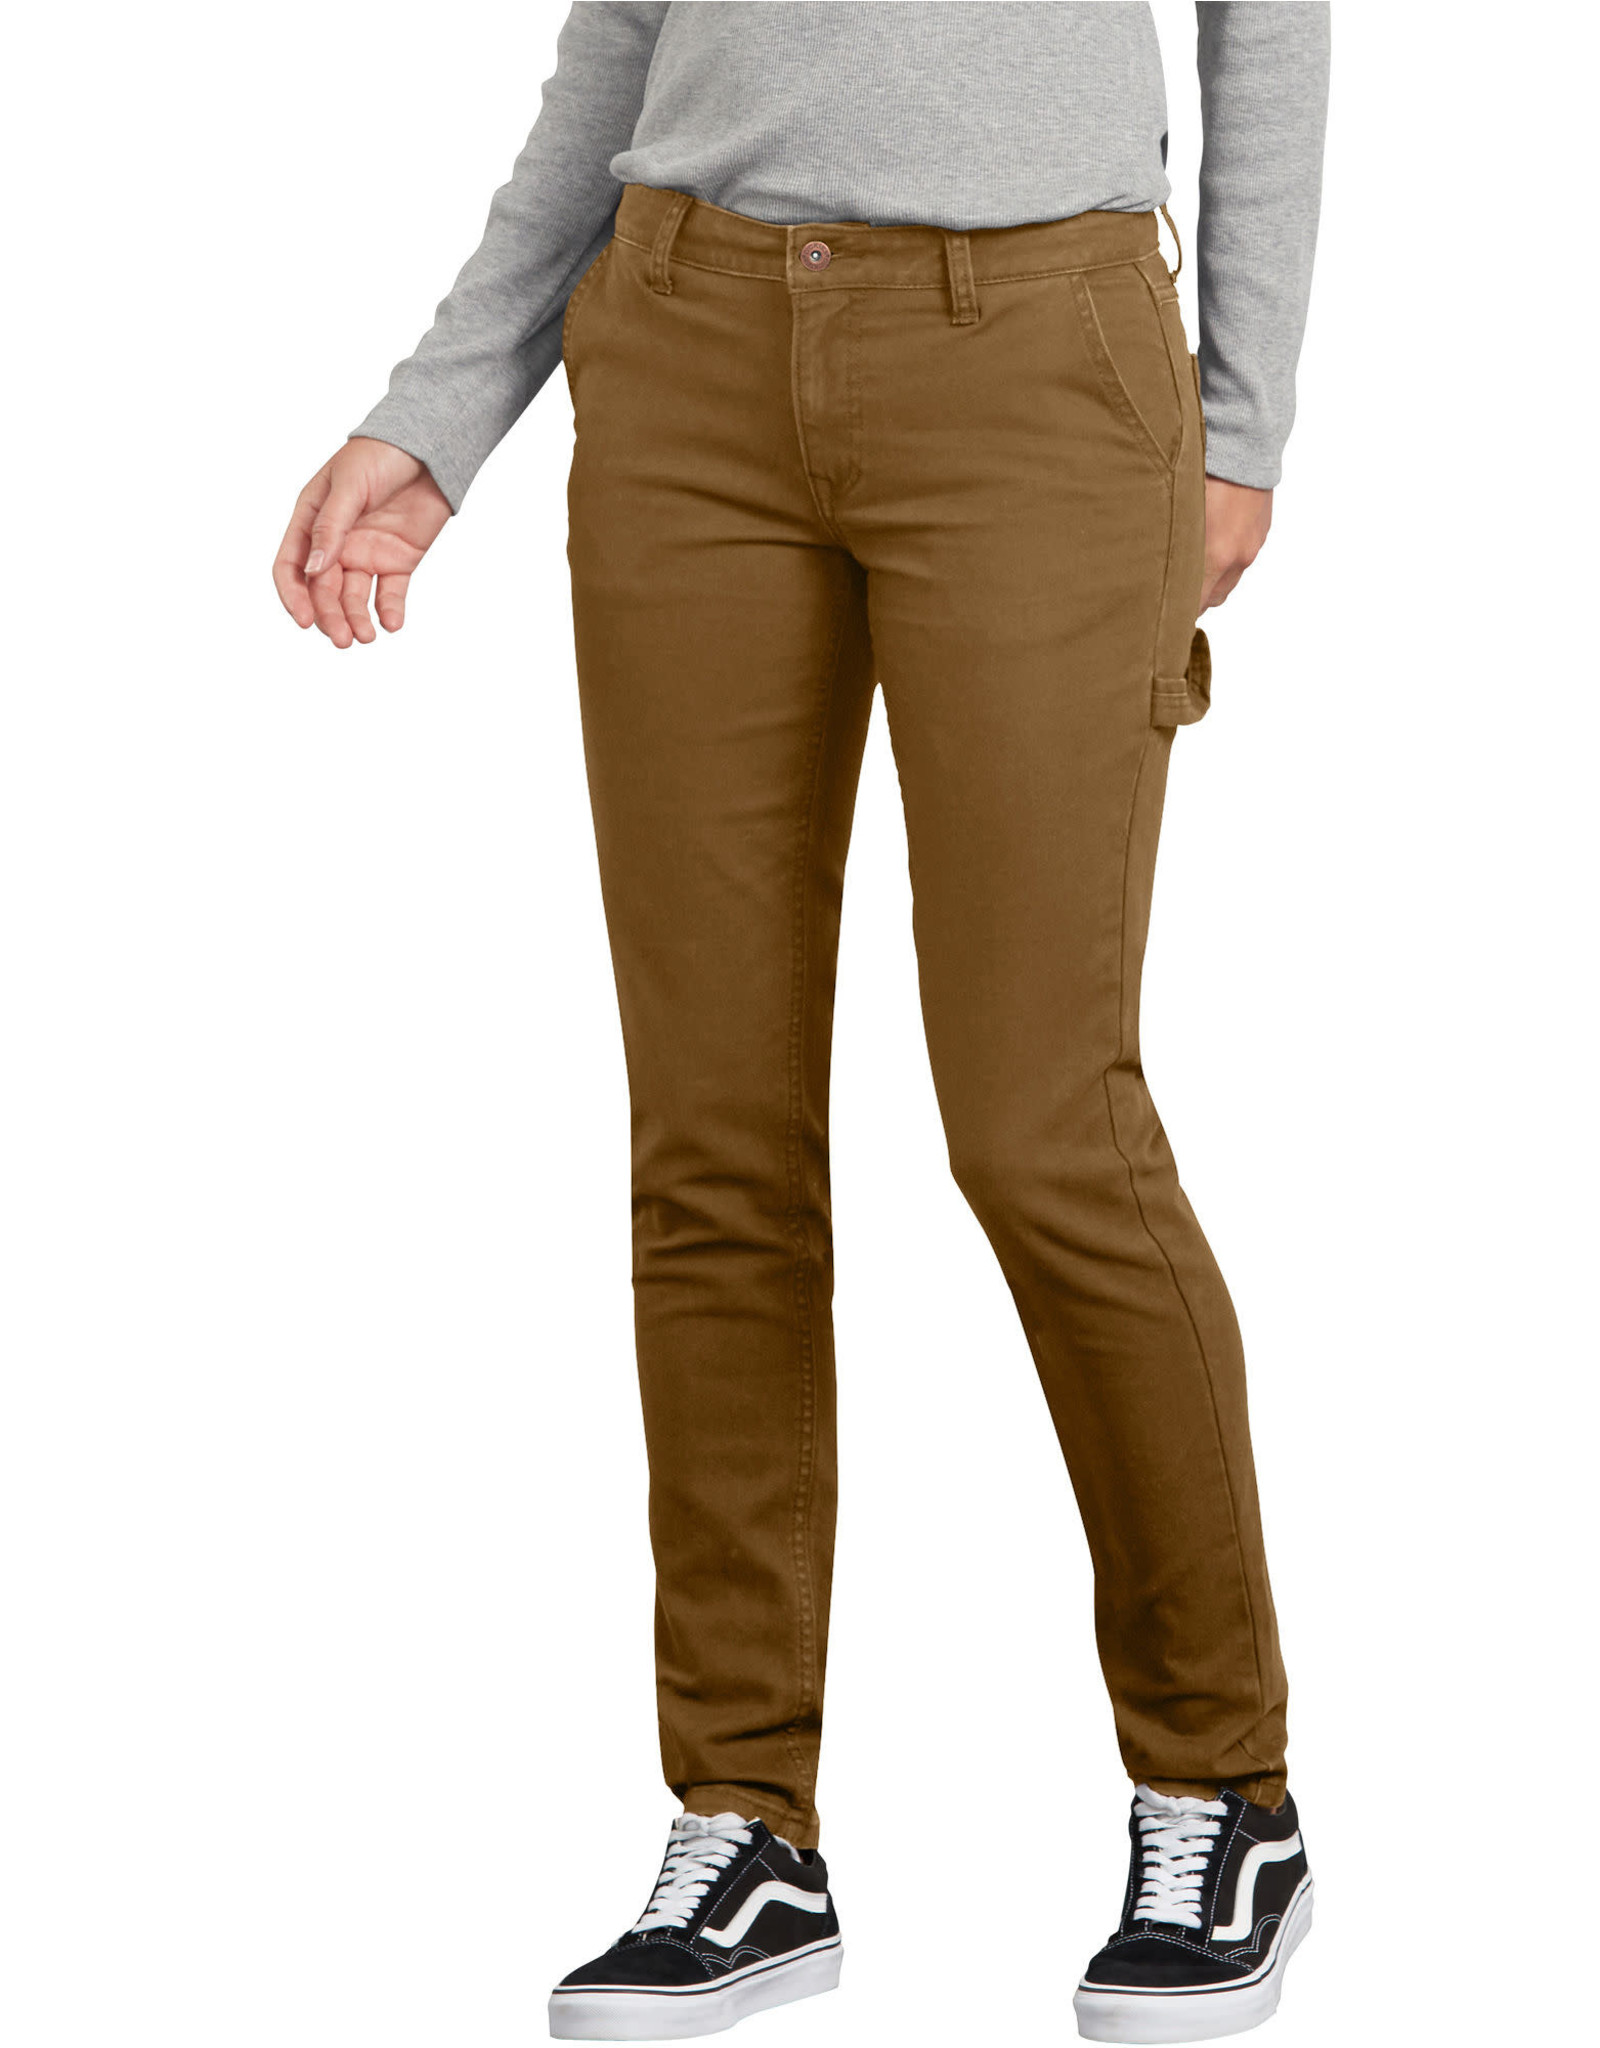 DICKIES Women's Stretch Washed Carpenter Pants